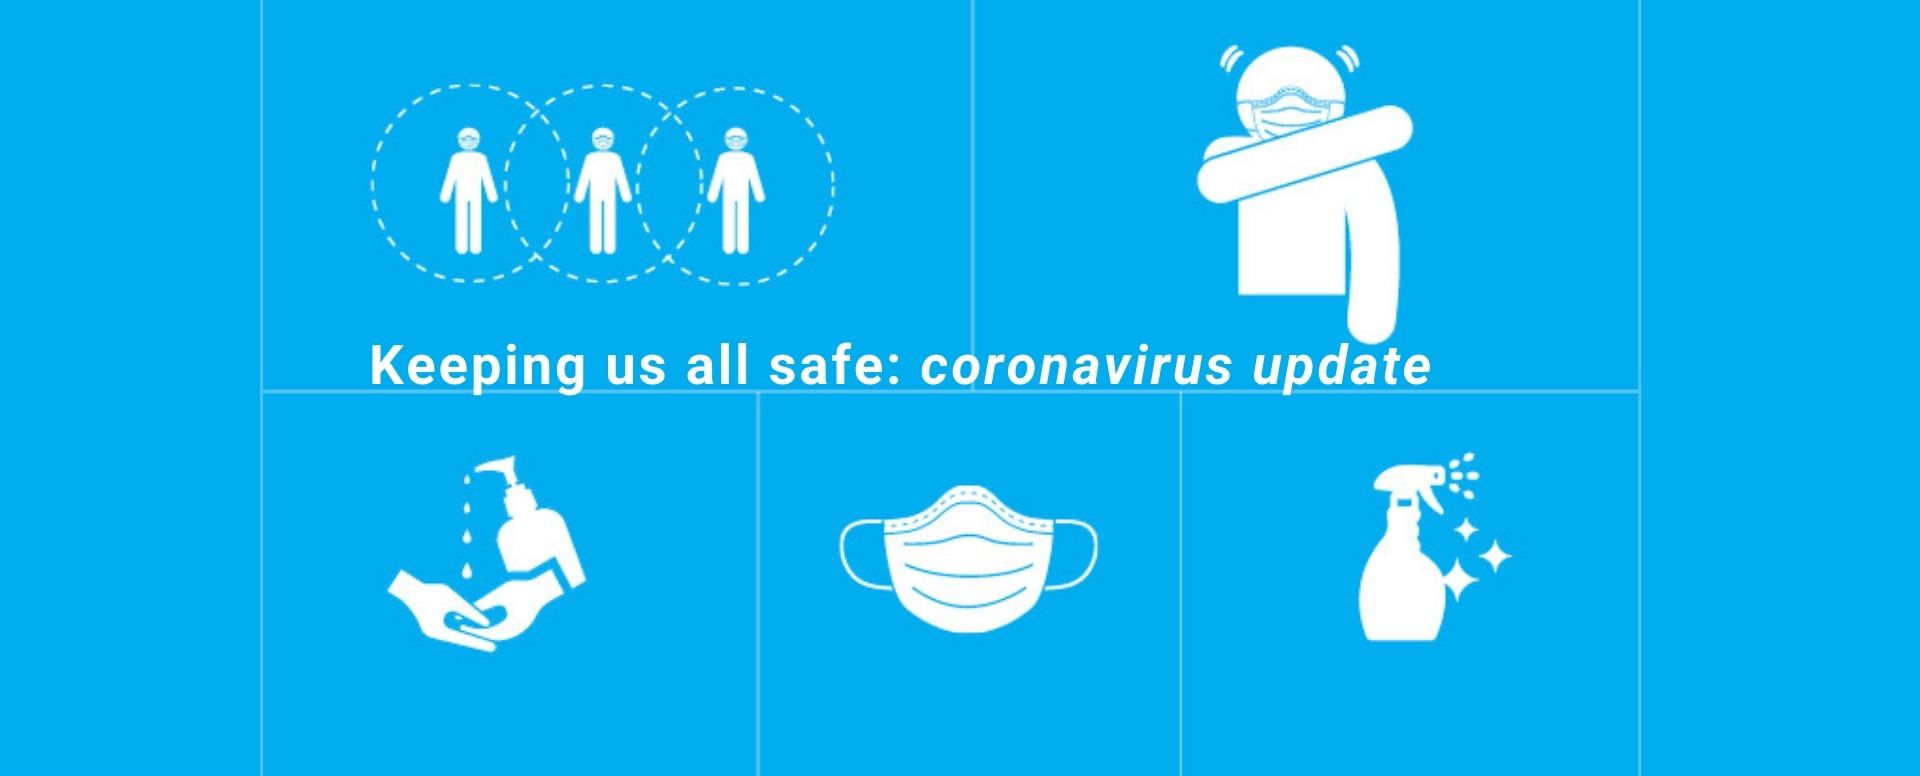 Keeping us all safe: covid-19 update